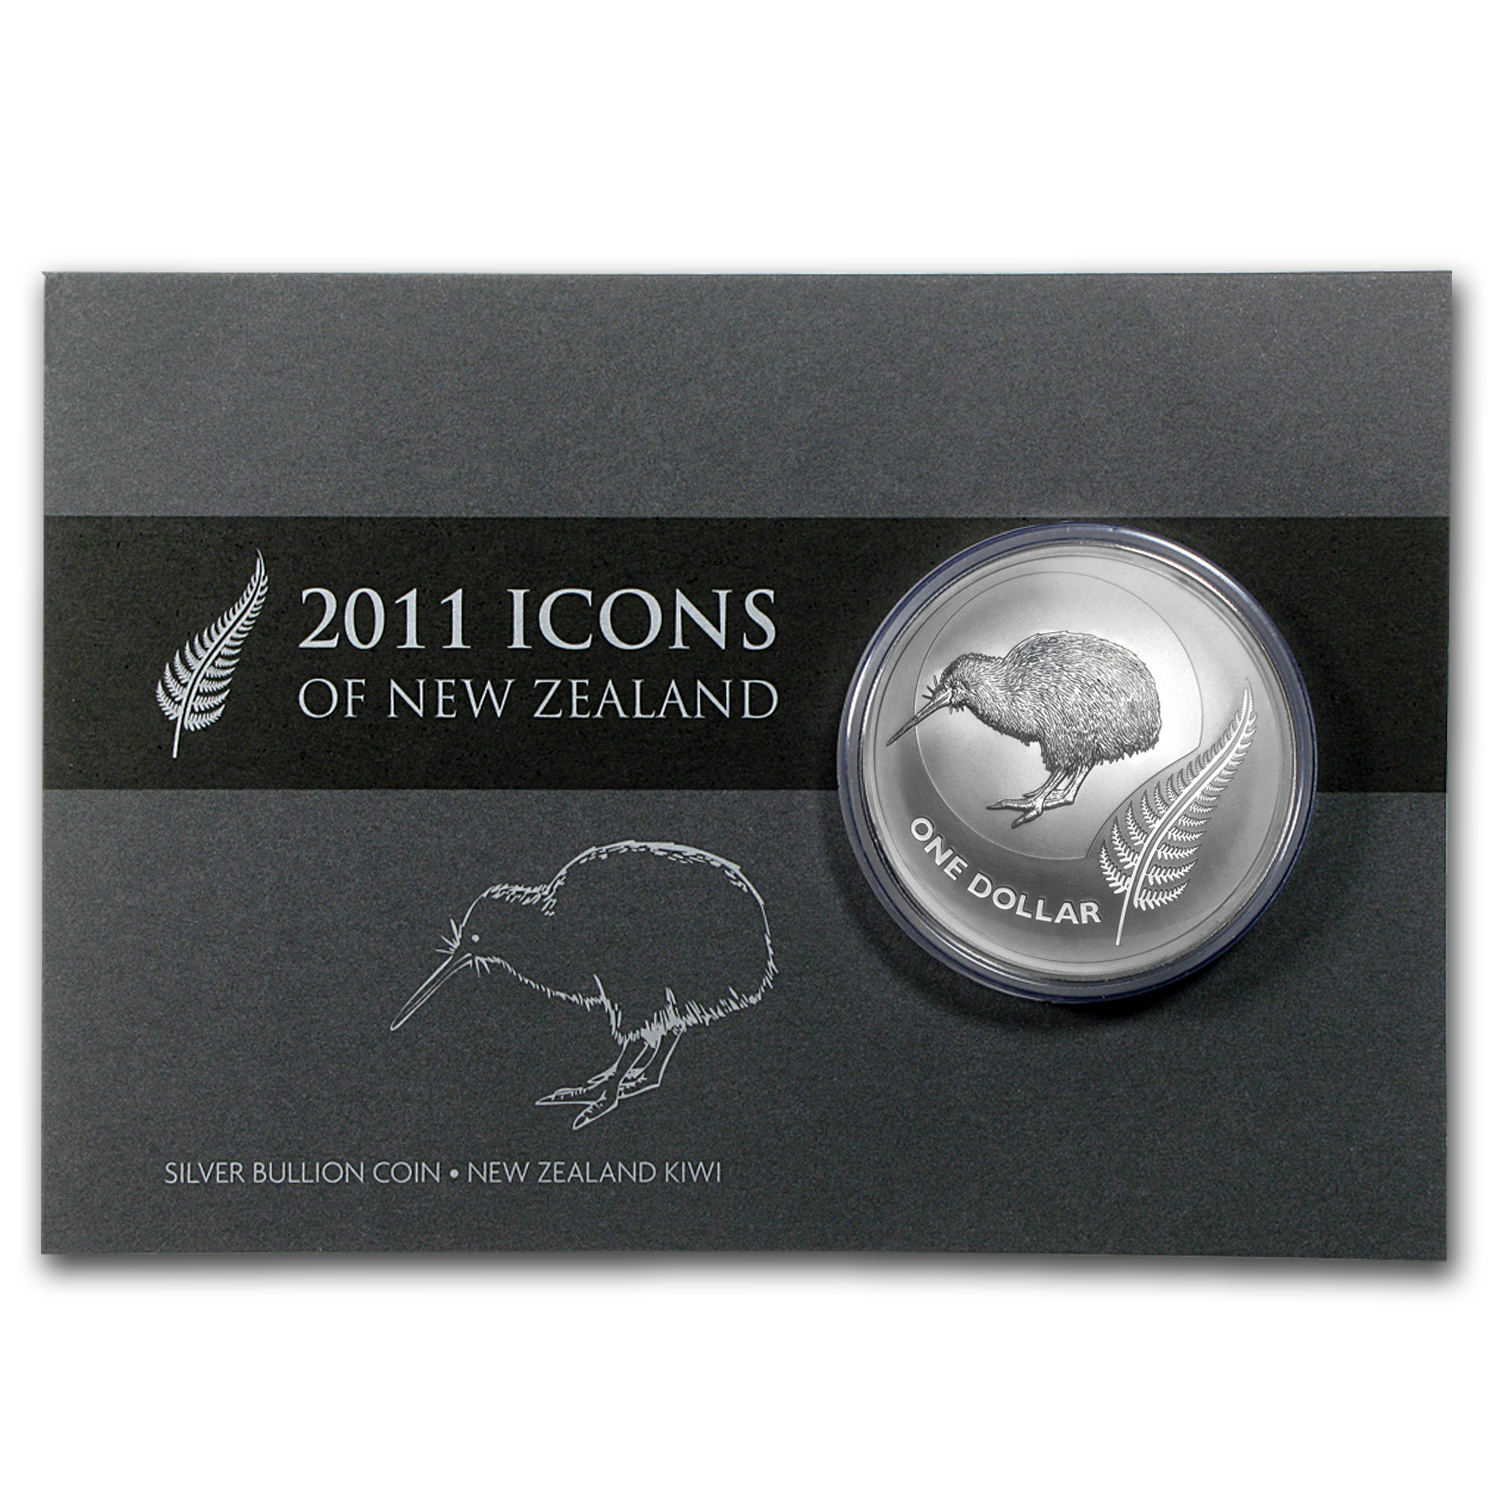 2011 1 oz Silver New Zealand Icons $1 Kiwi BU (w/Card)